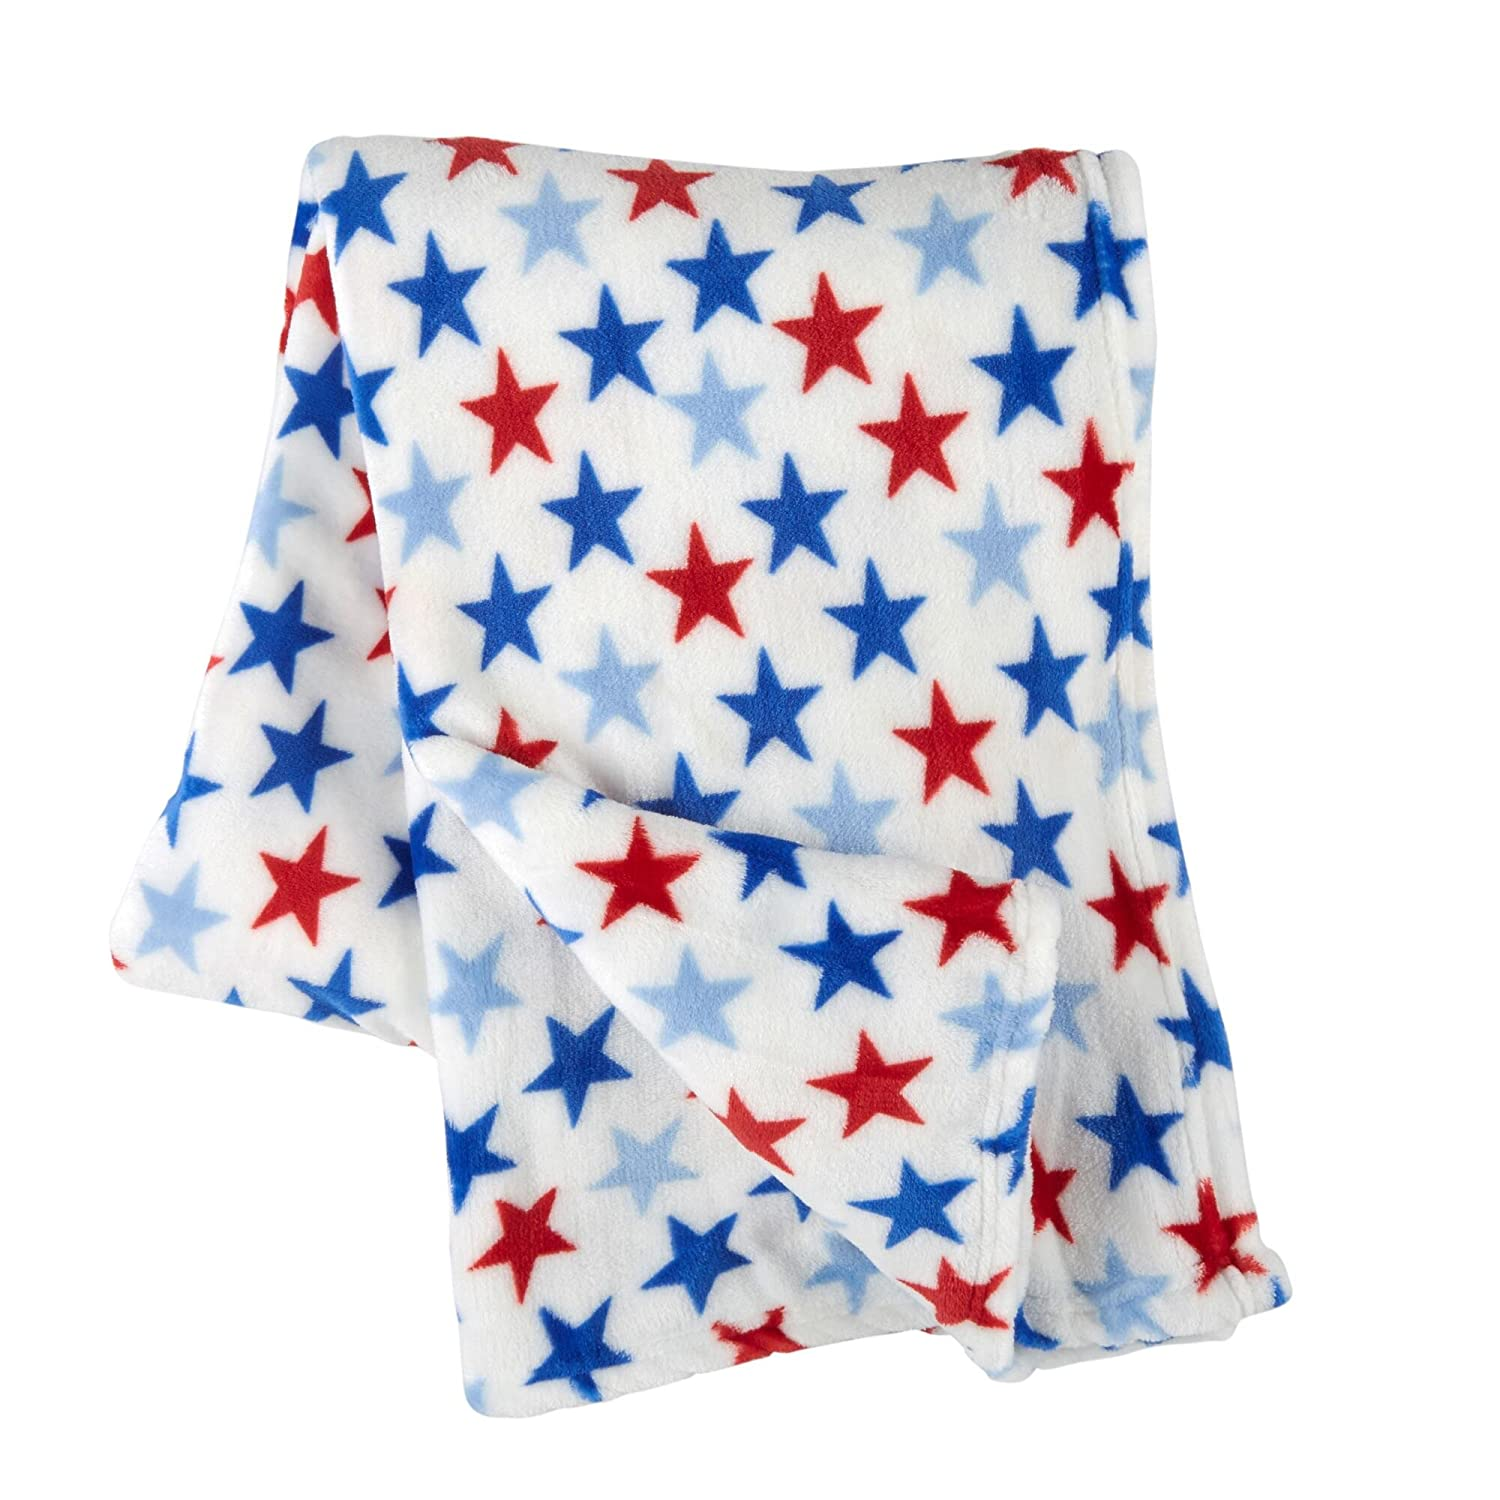 50-Inch x 70-Inch Marina Bay Nautical Patriotic Red White Blue American Stars Throw Blanket